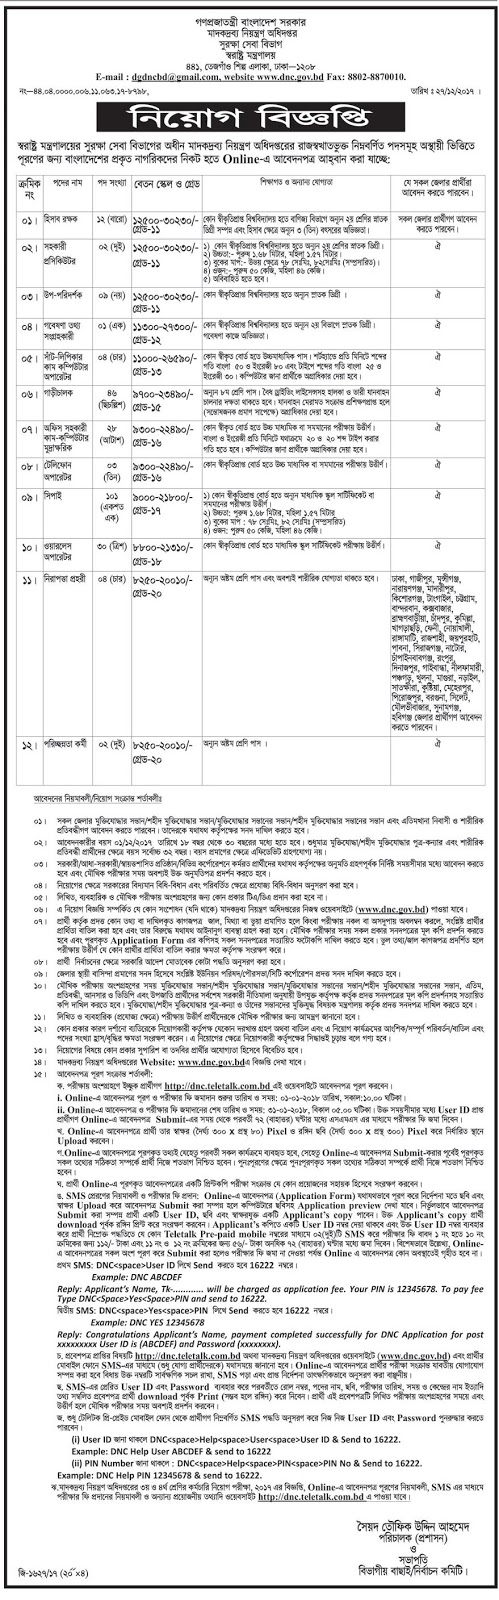 Department of Narcotics Control (DNC) Job Circular 2018